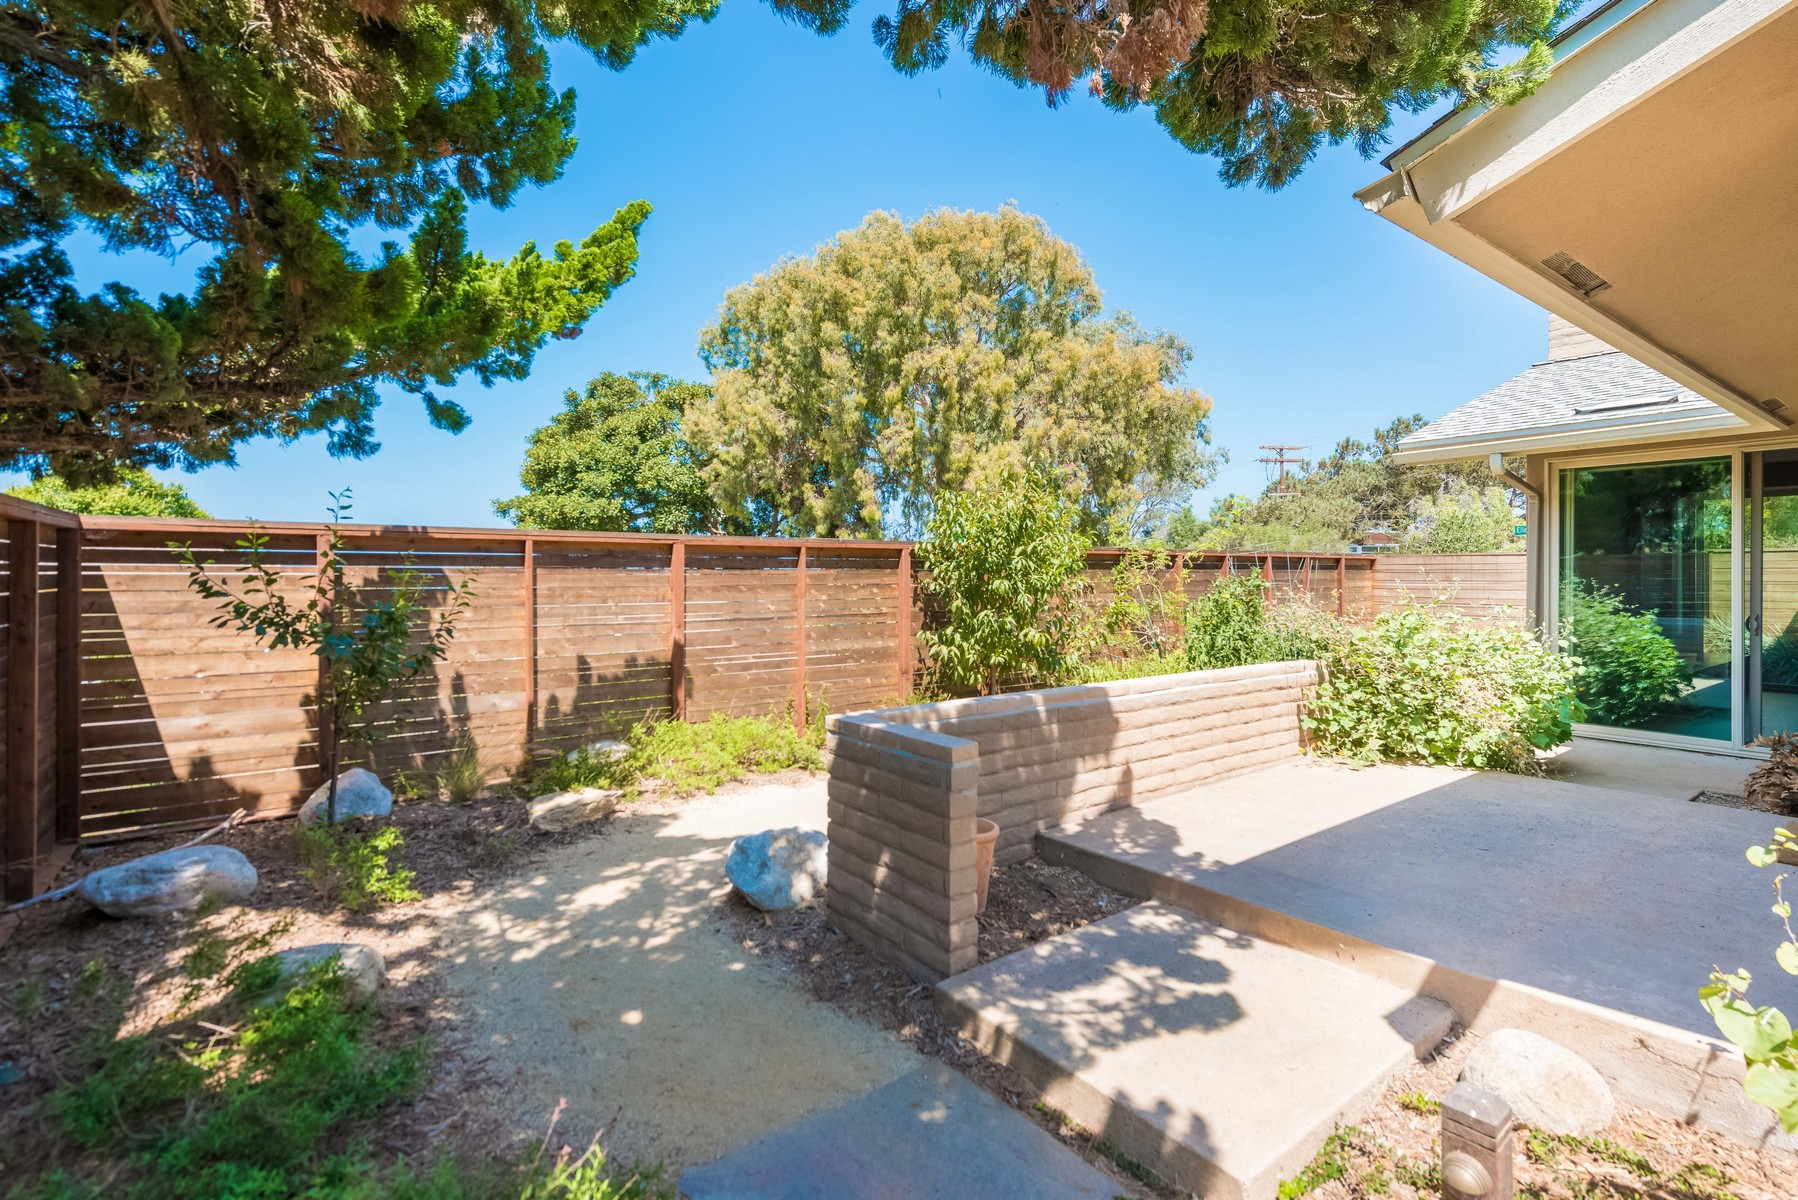 Additional photo for property listing at 2505 Ellentown Road  La Jolla, California 92037 United States